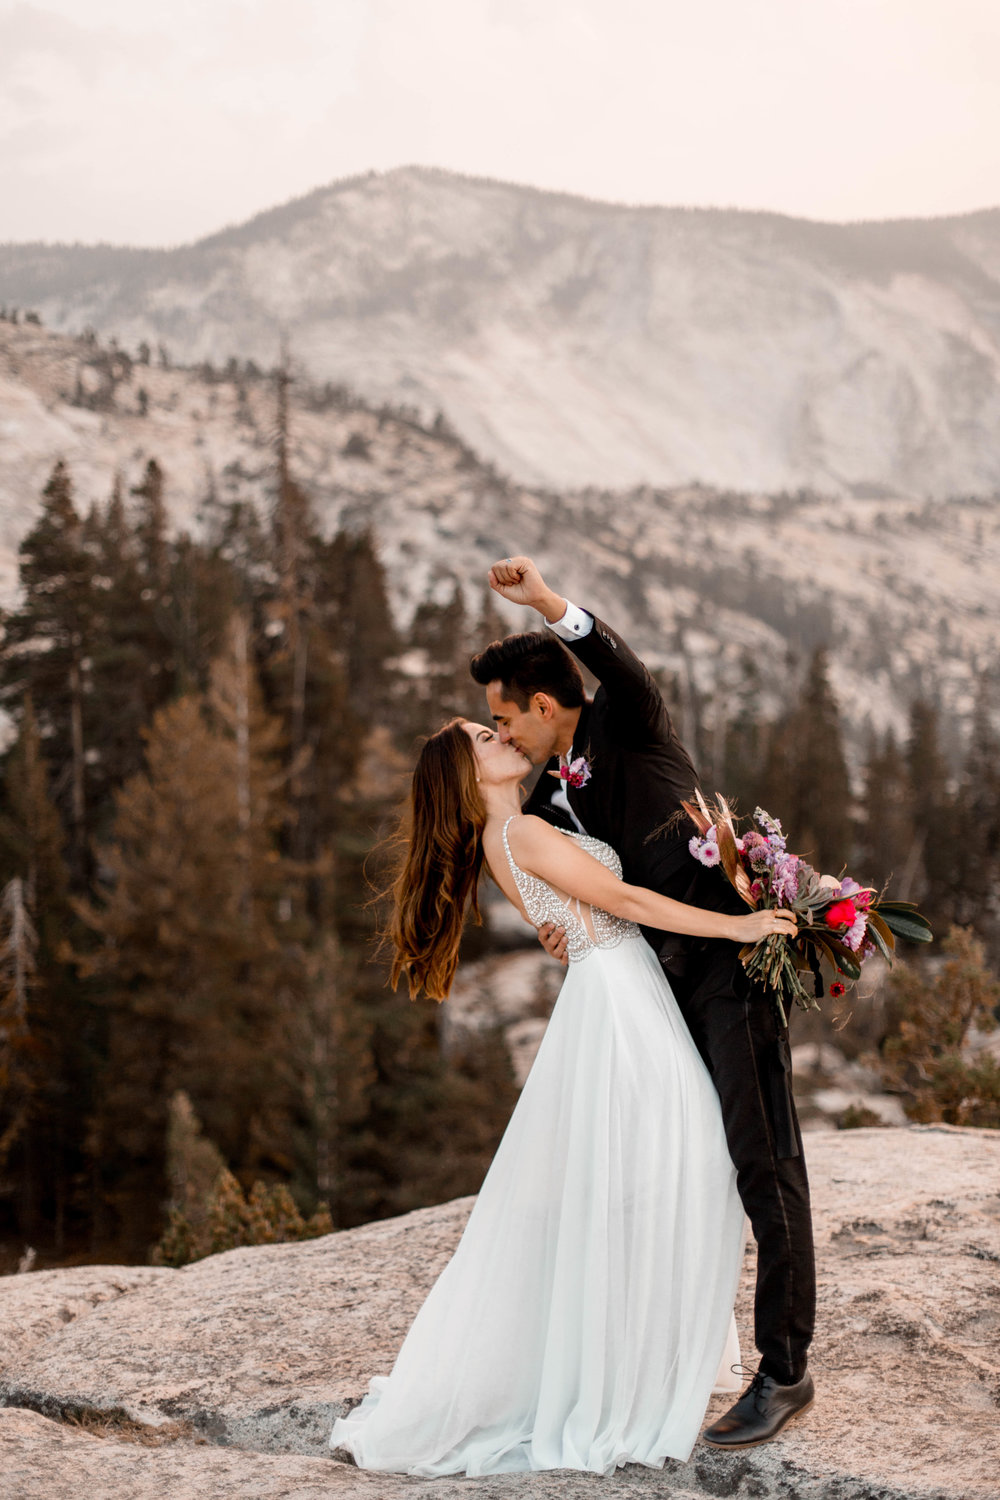 Nicole-Daacke-Photography-Yosemite-Aventurous-Elopement-Photographer-Photography-Authentic-Glam-Love-National-Parks-9.jpg